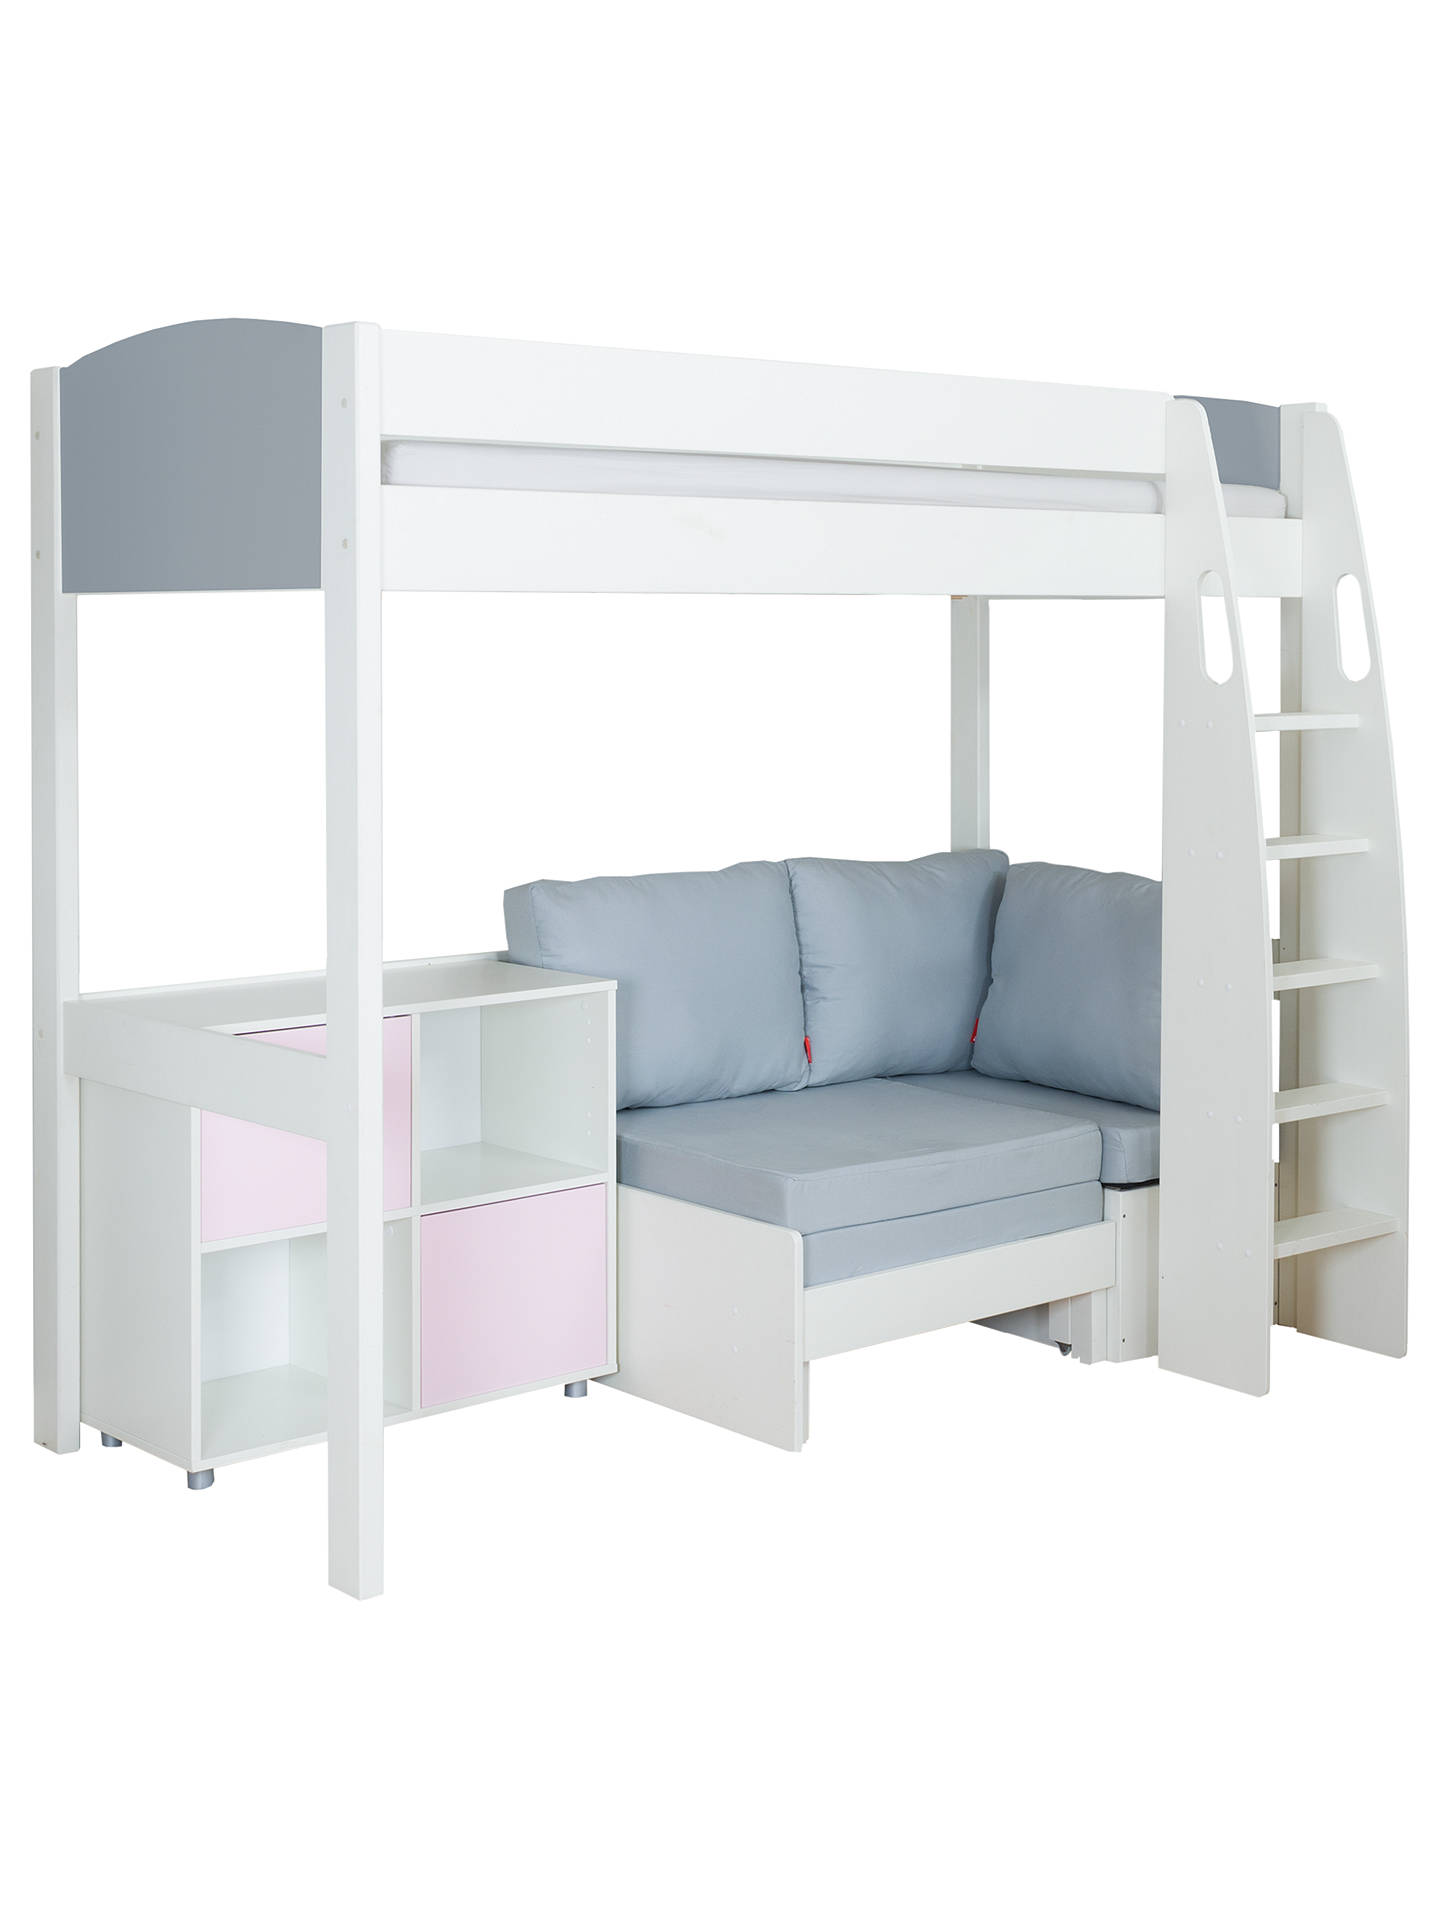 Stompa Uno S Plus High-Sleeper With Grey Headboard, Grey